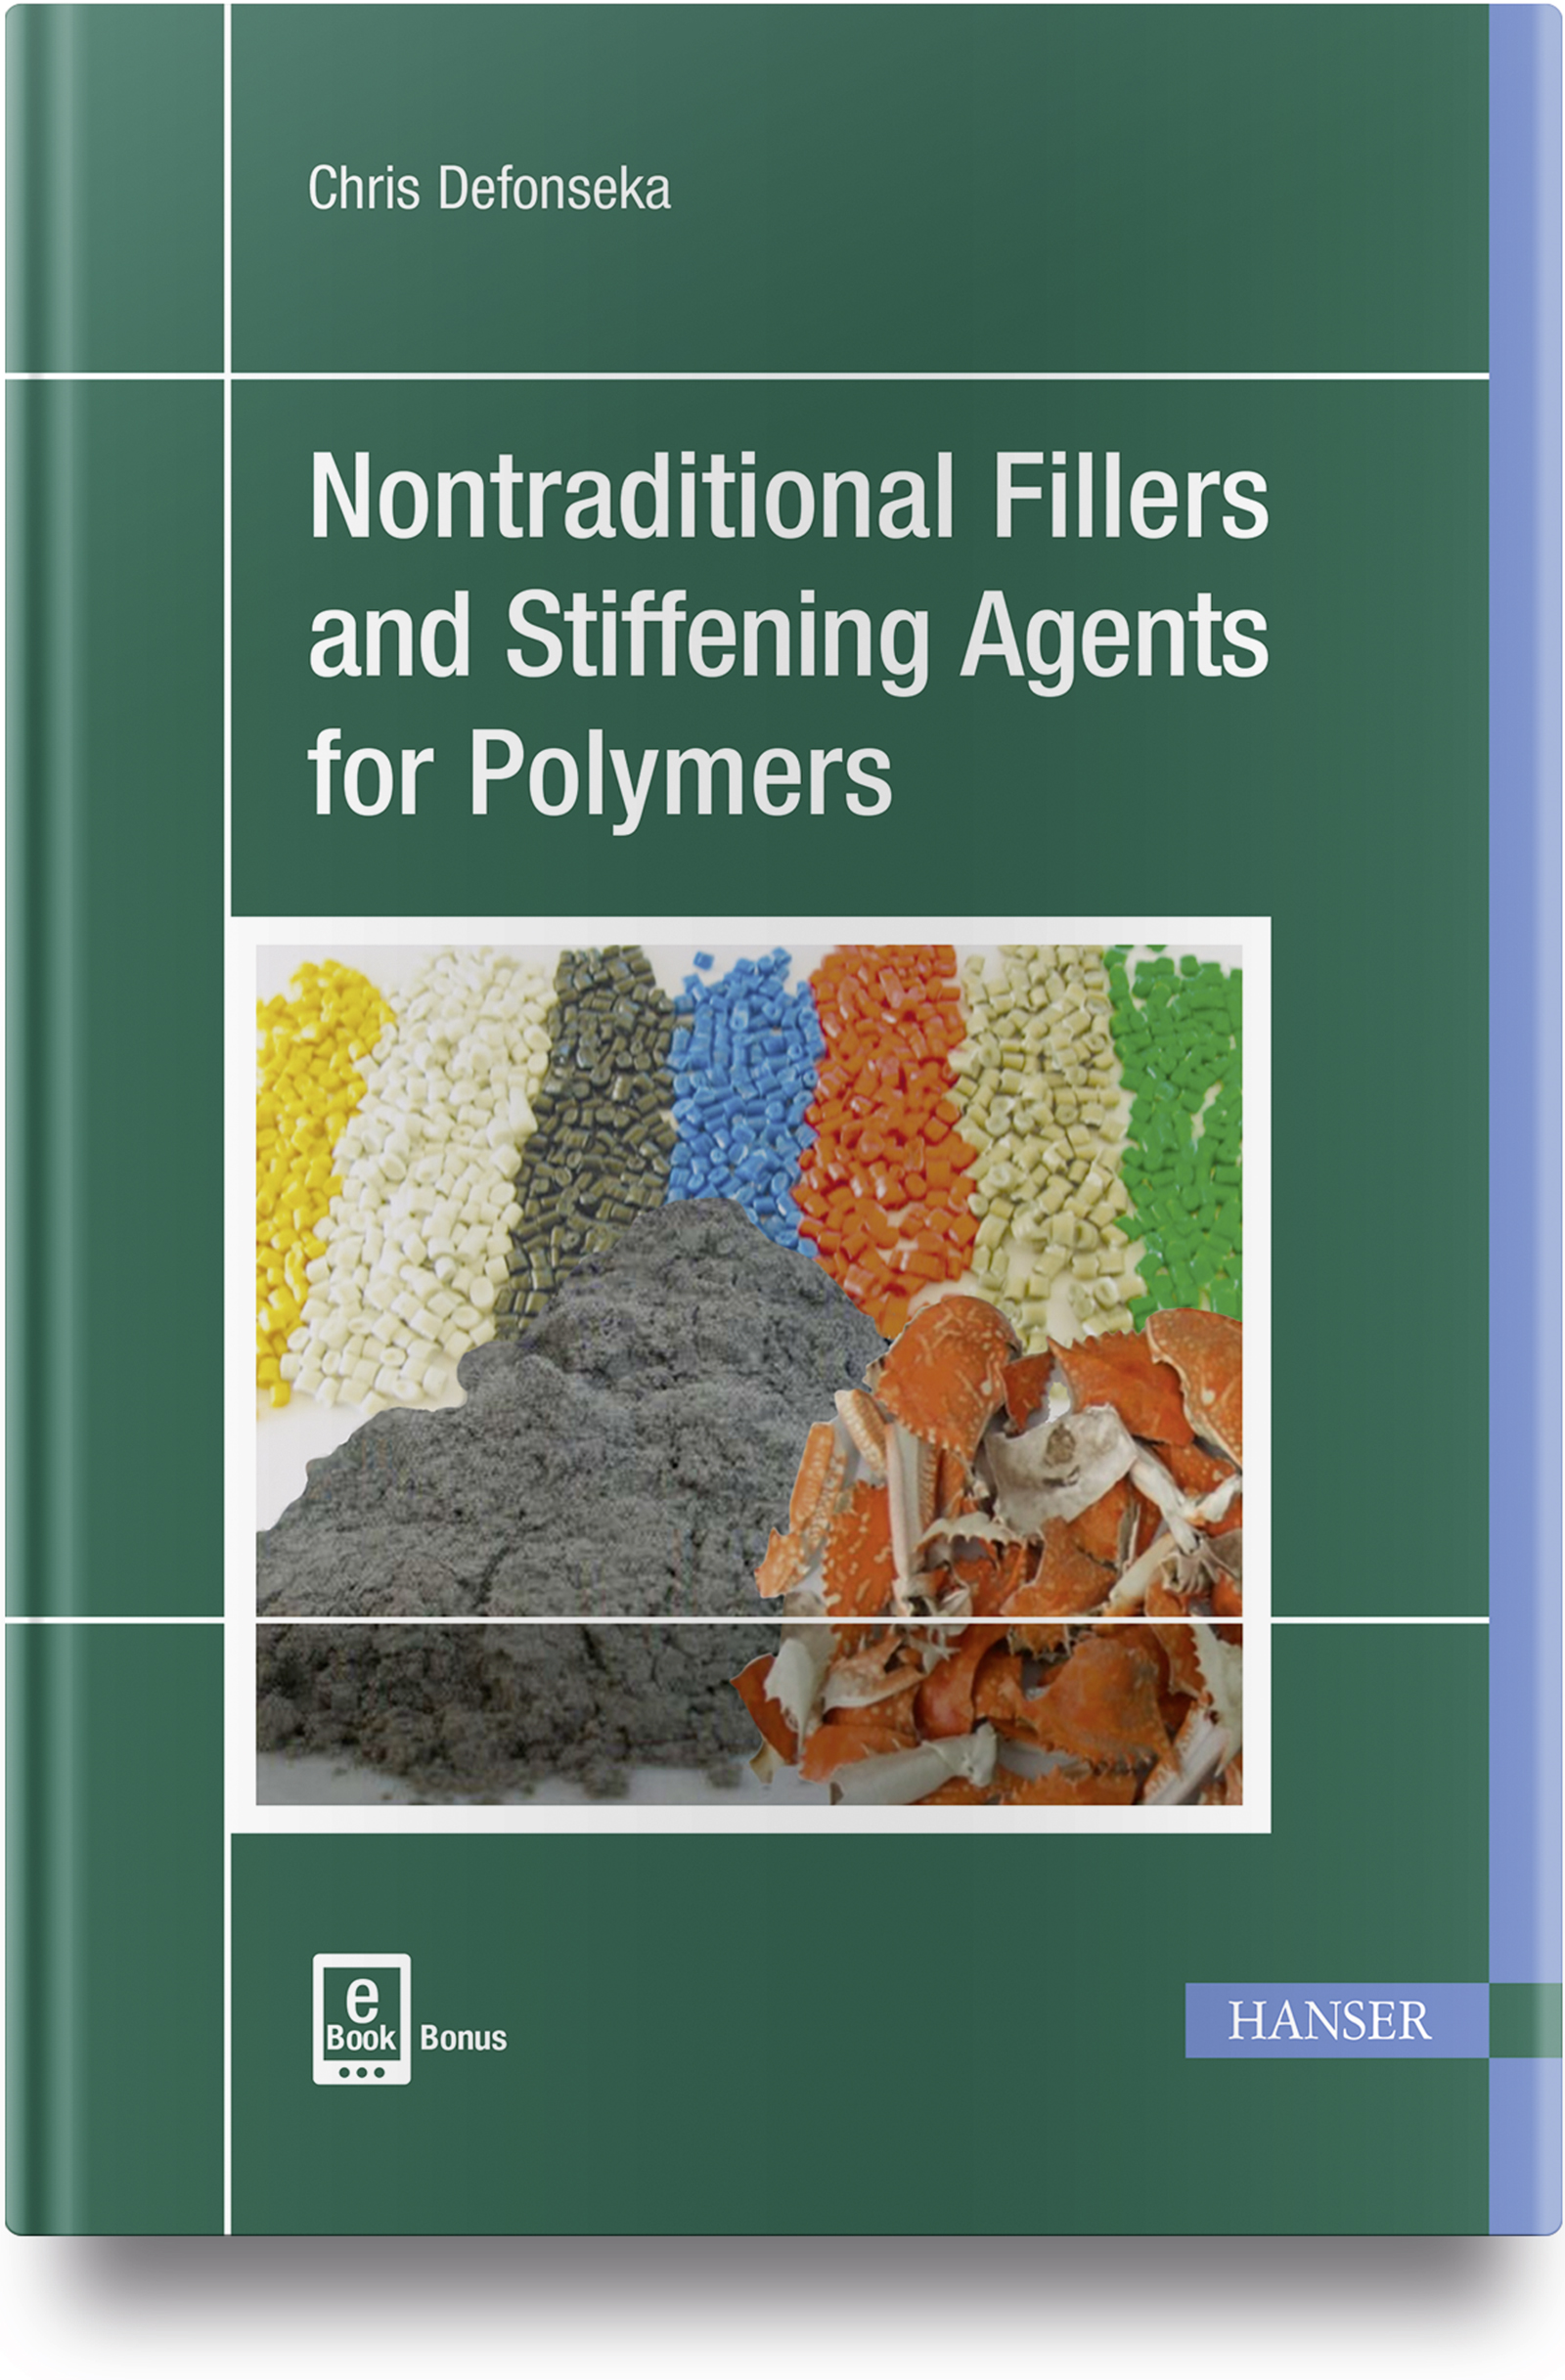 Defonseka, Nontraditional Fillers and Stiffening Agents for Polymers, 978-1-56990-625-5